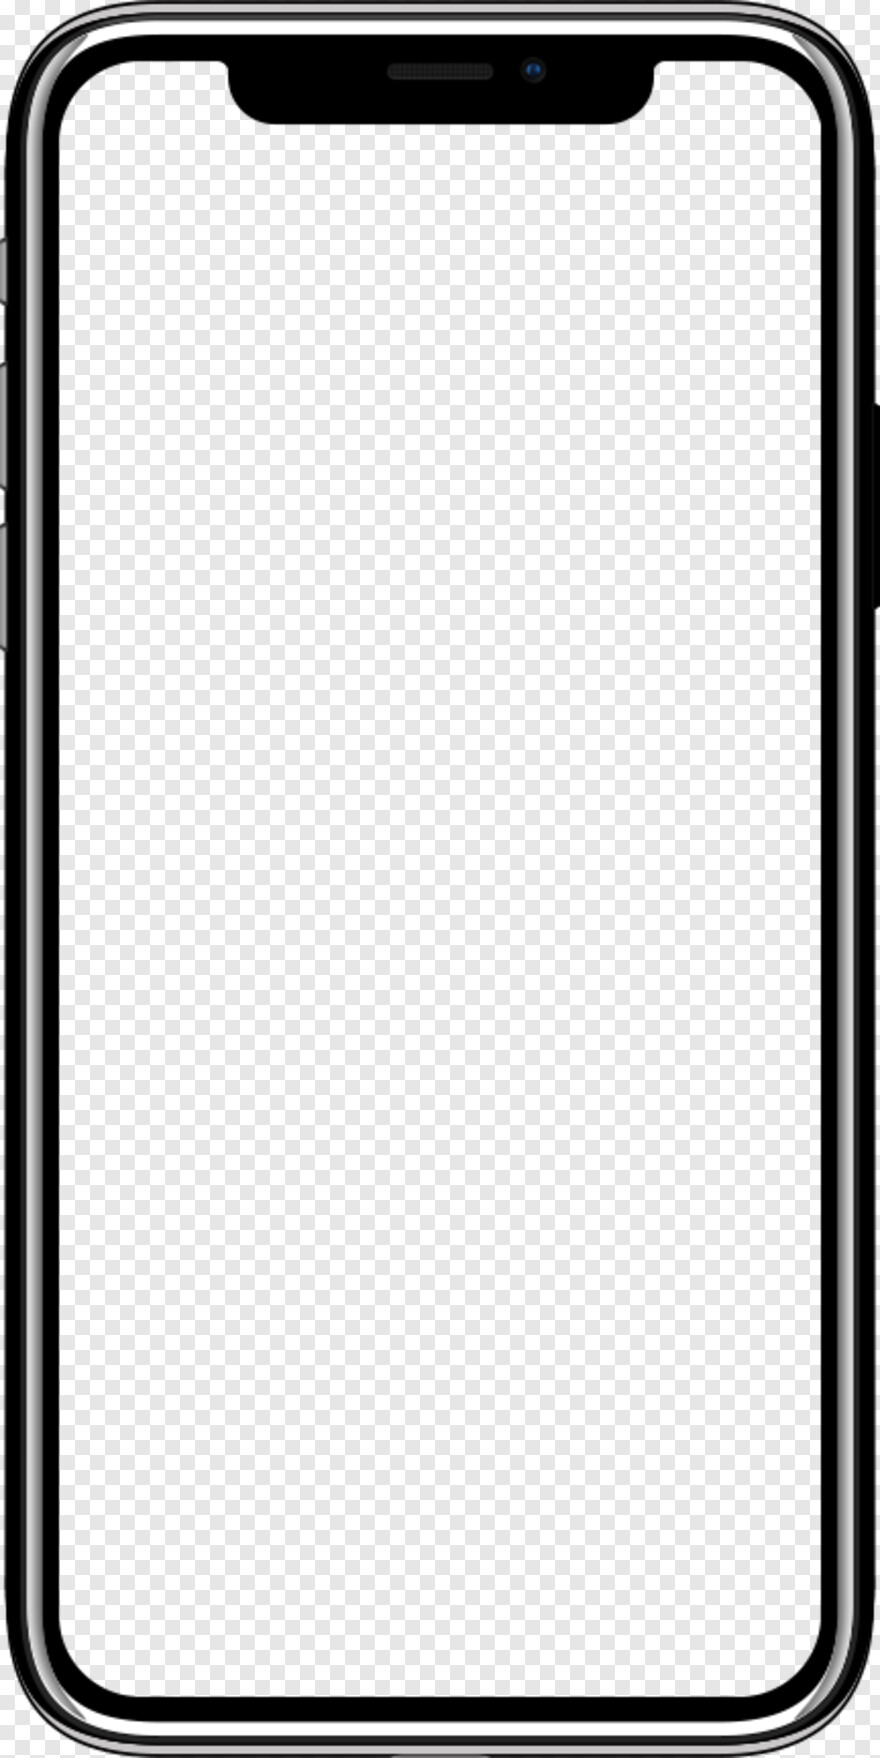 Iphone Frame Iphone X Transparent Screen Hd Png Download